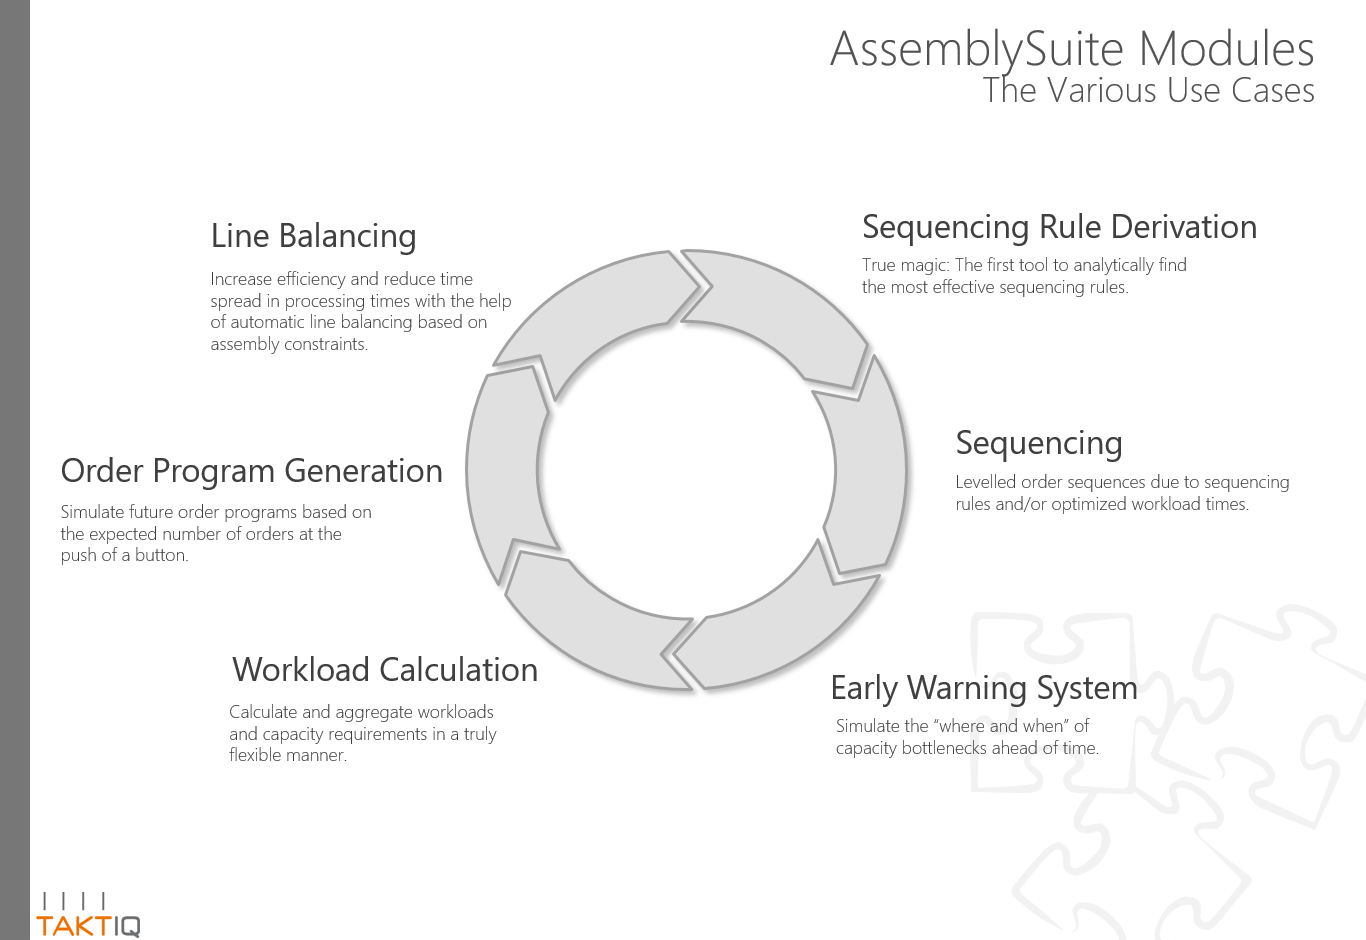 Picture: AssemblySuite Modules